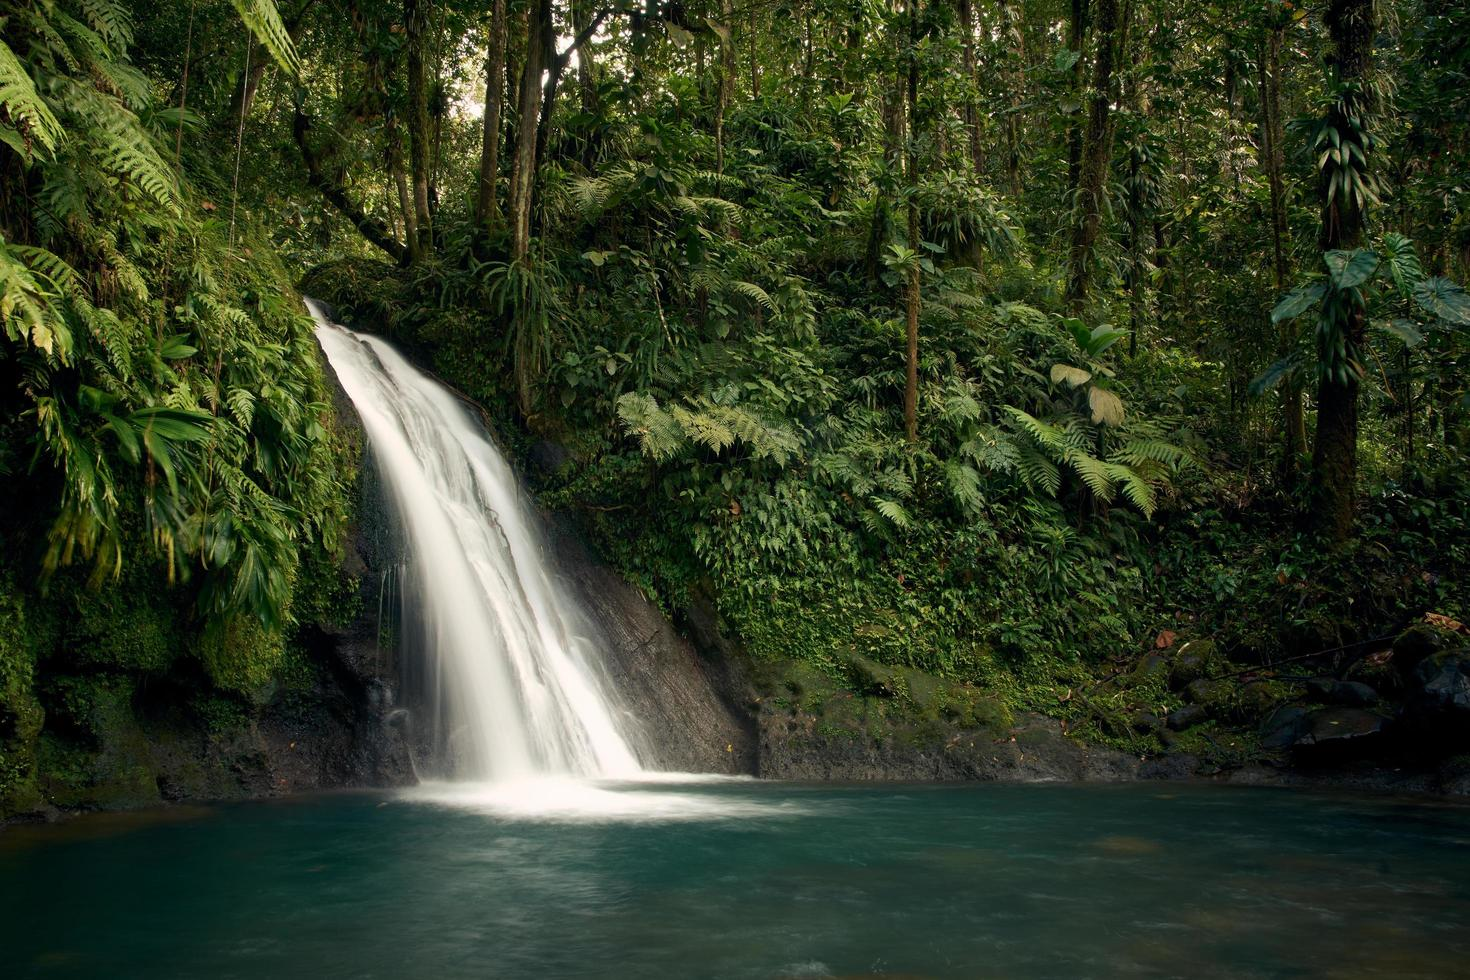 Waterfall in middle of green trees photo